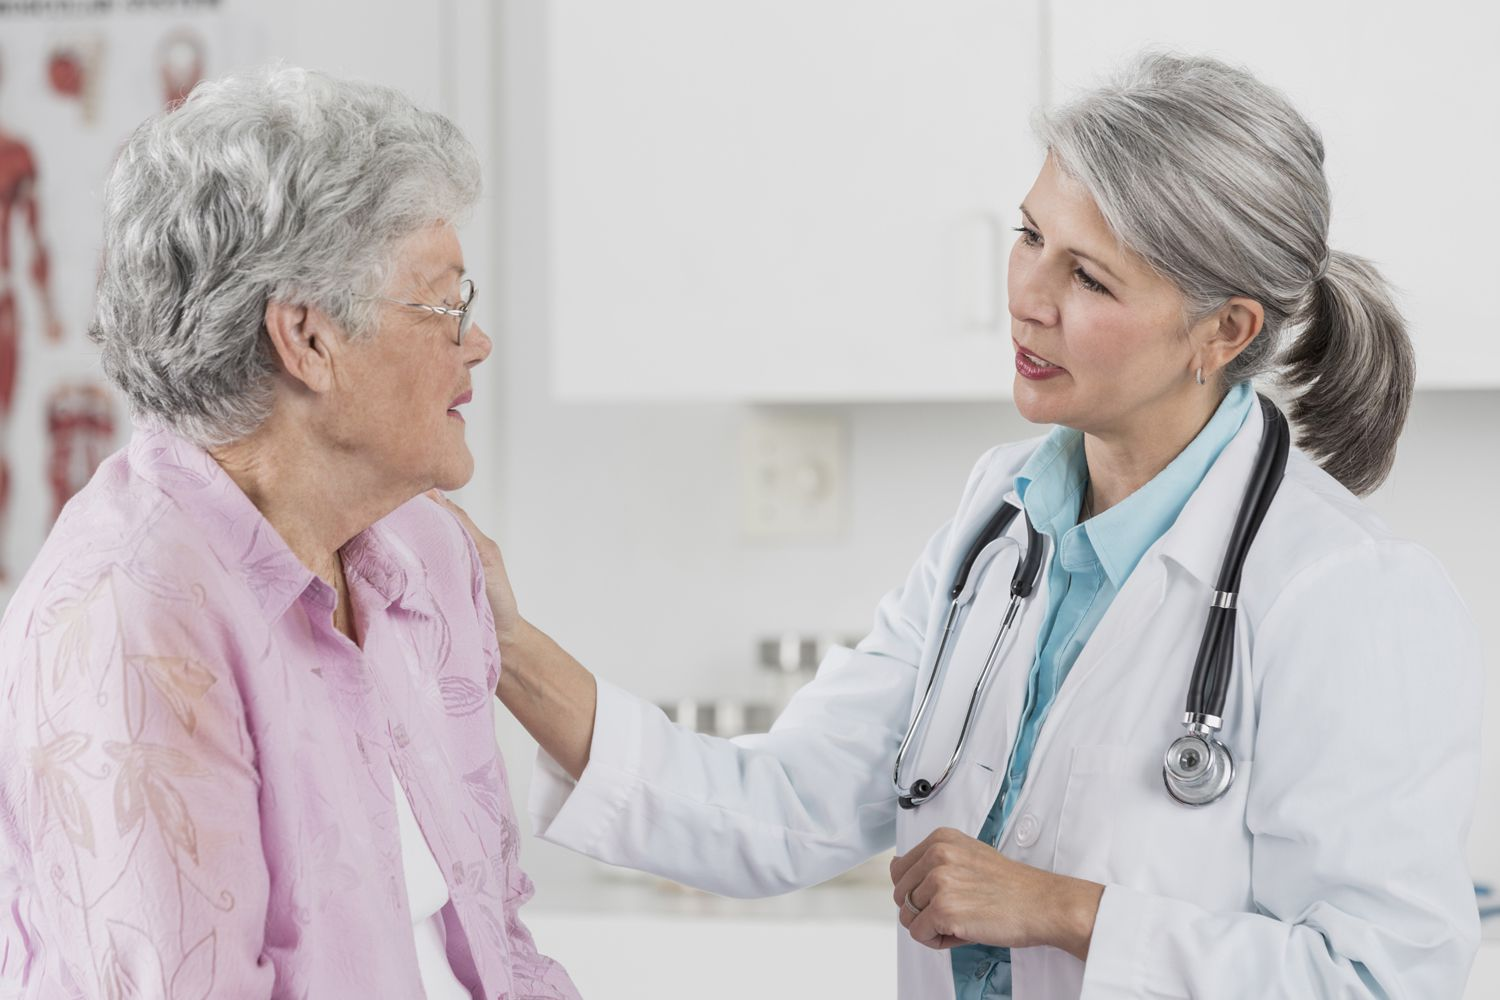 A patient talks with her doctor